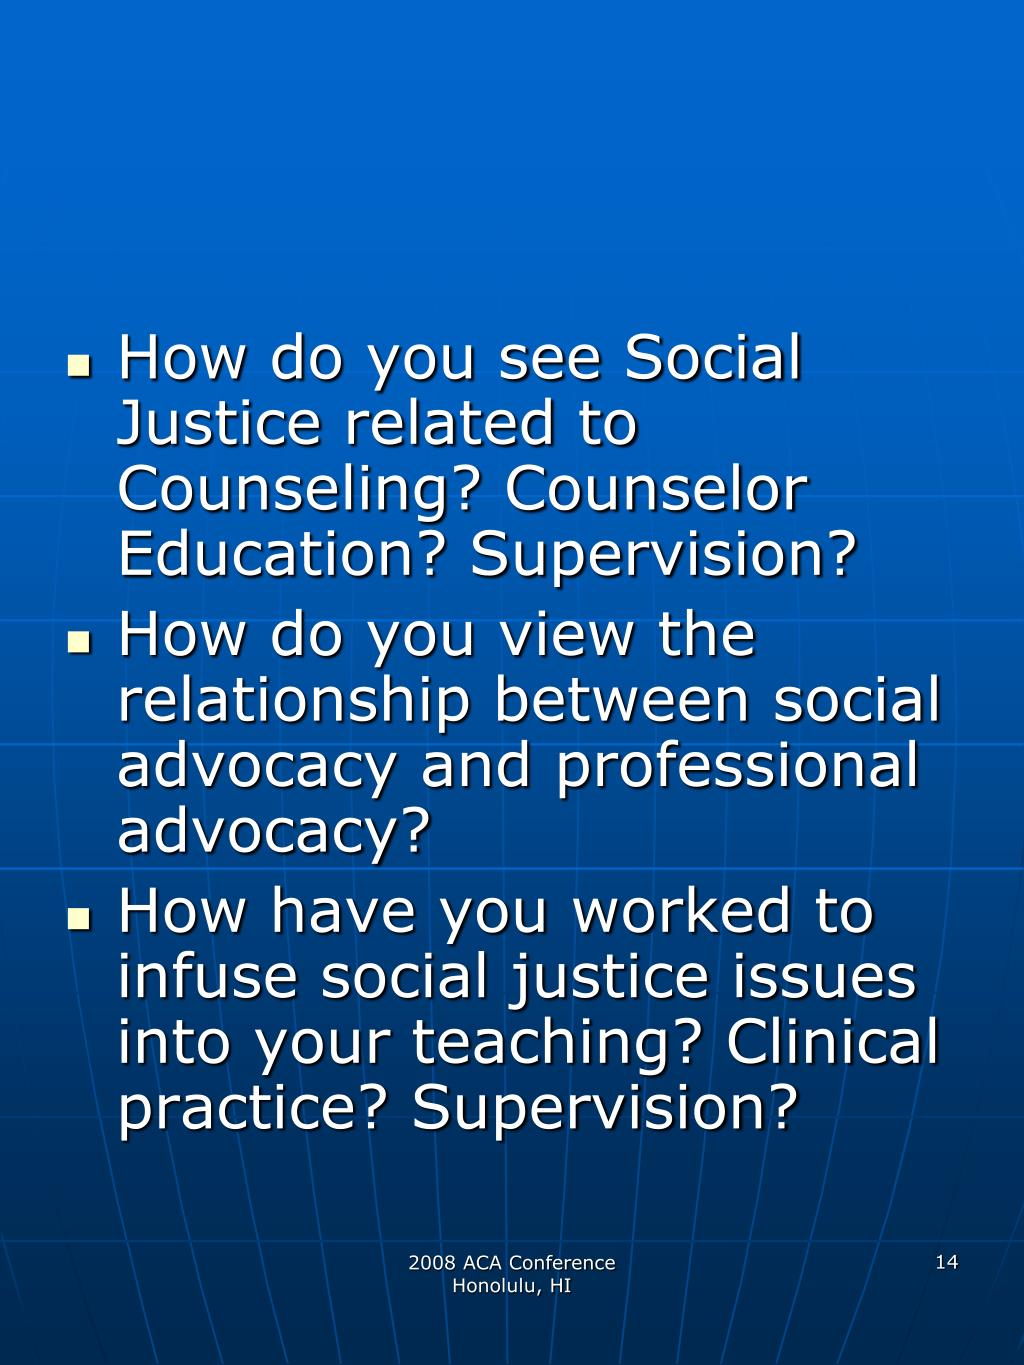 How do you see Social Justice related to Counseling? Counselor Education? Supervision?